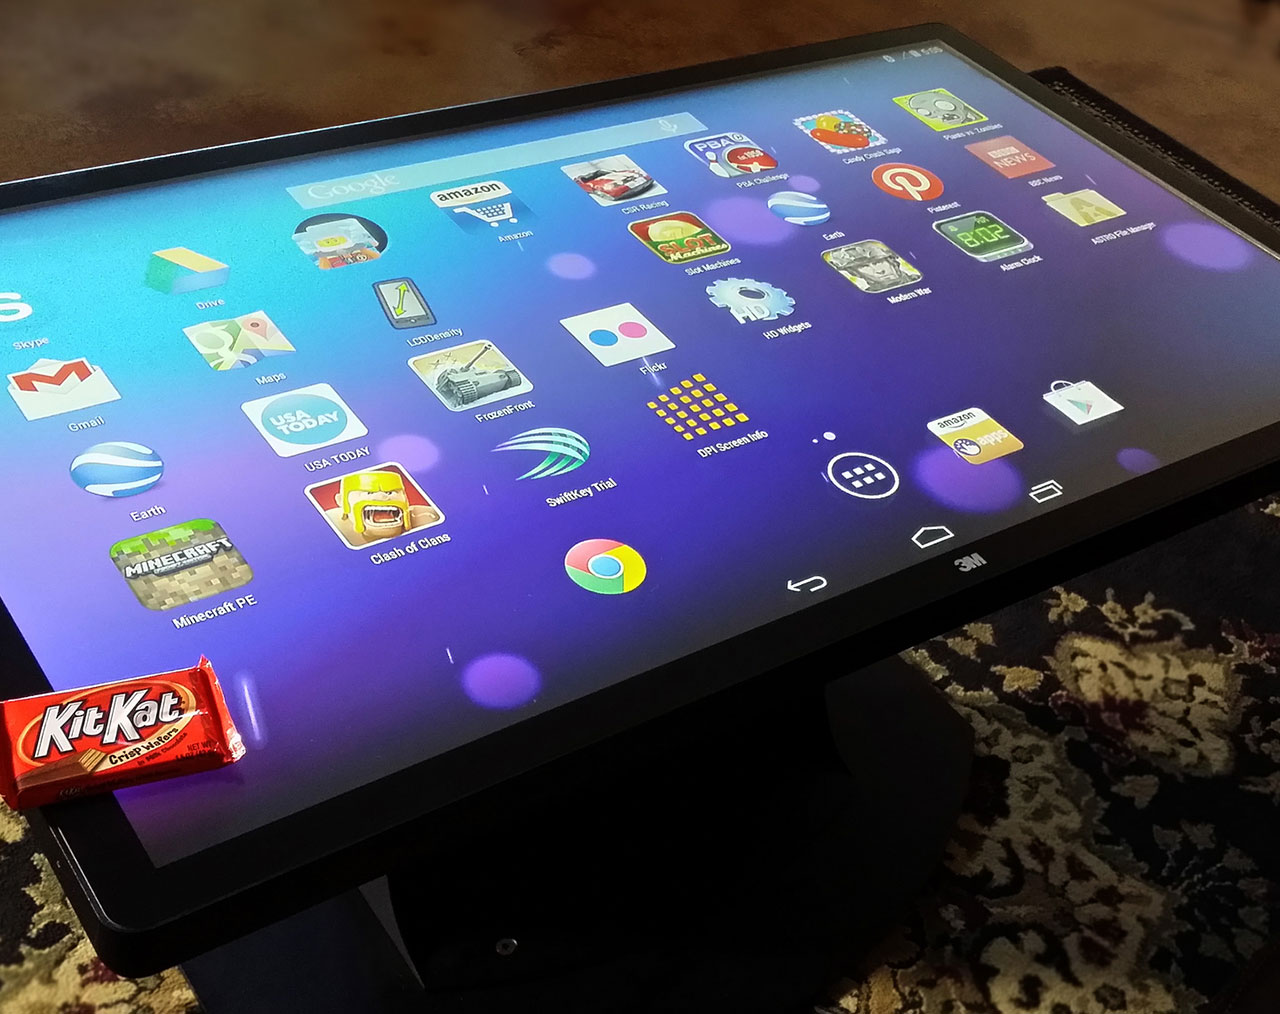 Sweet Deal: Android KitKat OS on an Ideum Multitouch Coffee Table